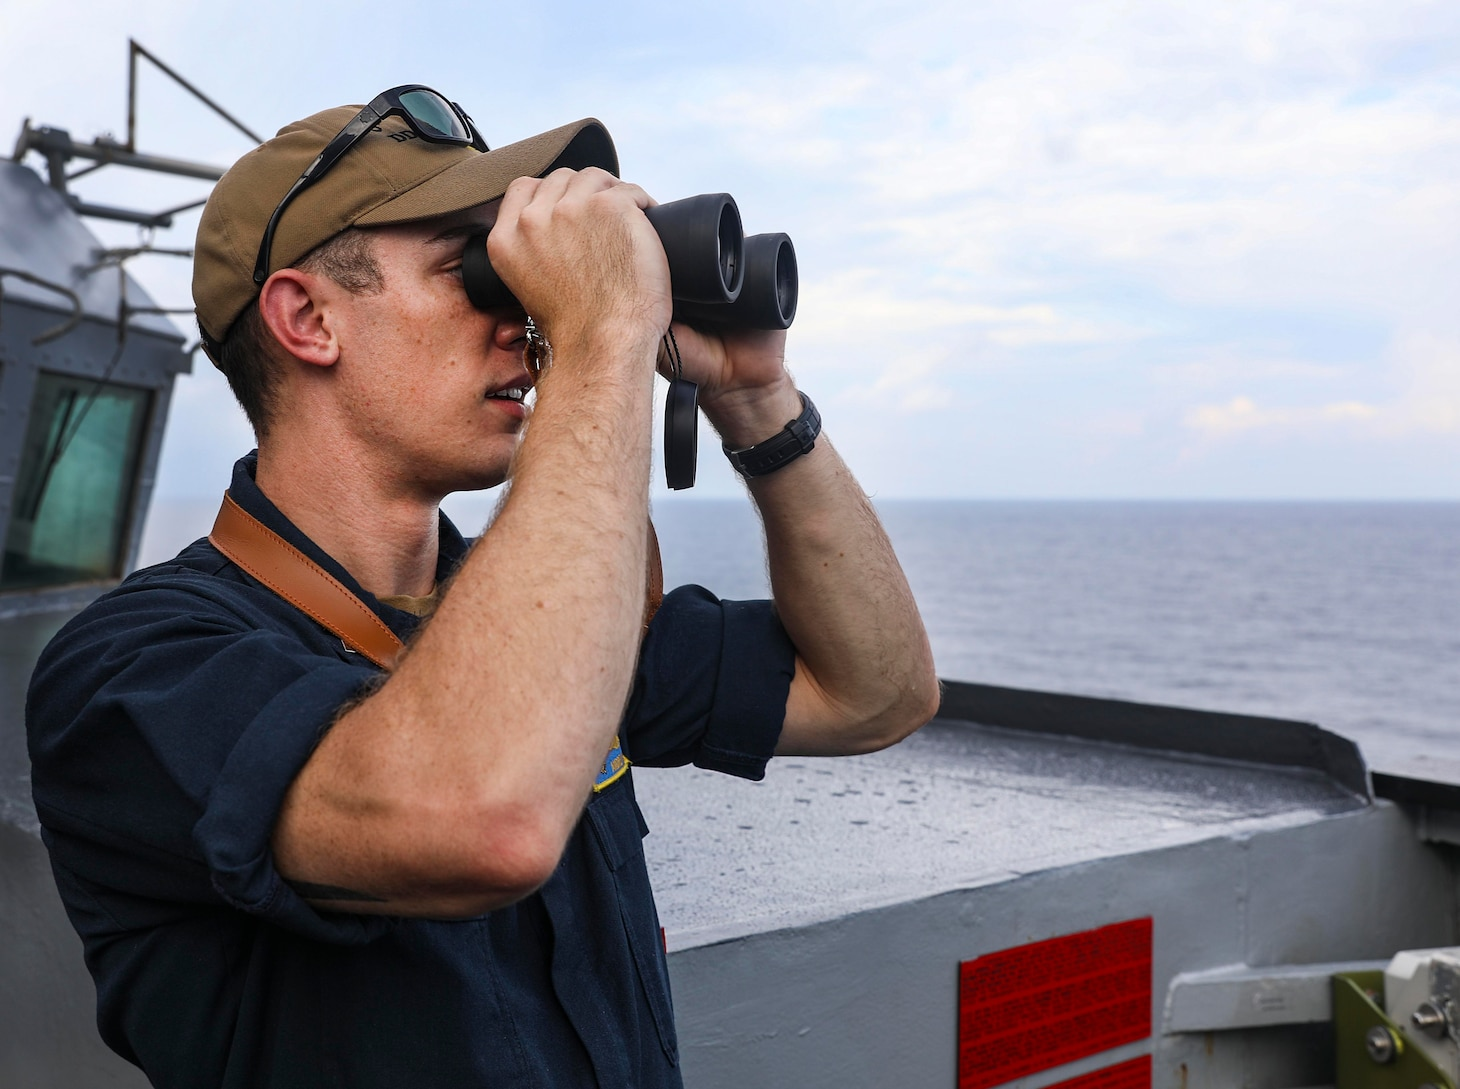 210712-N-FO714-1033 SOUTH CHINA SEA (July 12, 2021) Lt.j.g. Andrew Hayne, from Parker, Colo., uses binoculars to monitor a surface contact from the bridge wing of the Arleigh Burke-class guided-missile destroyer USS Benfold (DDG 65) while conducting routine underway operations. Benfold is forward-deployed to the U.S. 7th Fleet area of operations in support of a free and open Indo-Pacific. (U.S. Navy photo by Mass Communication Specialist 1st Class Deanna C. Gonzales)